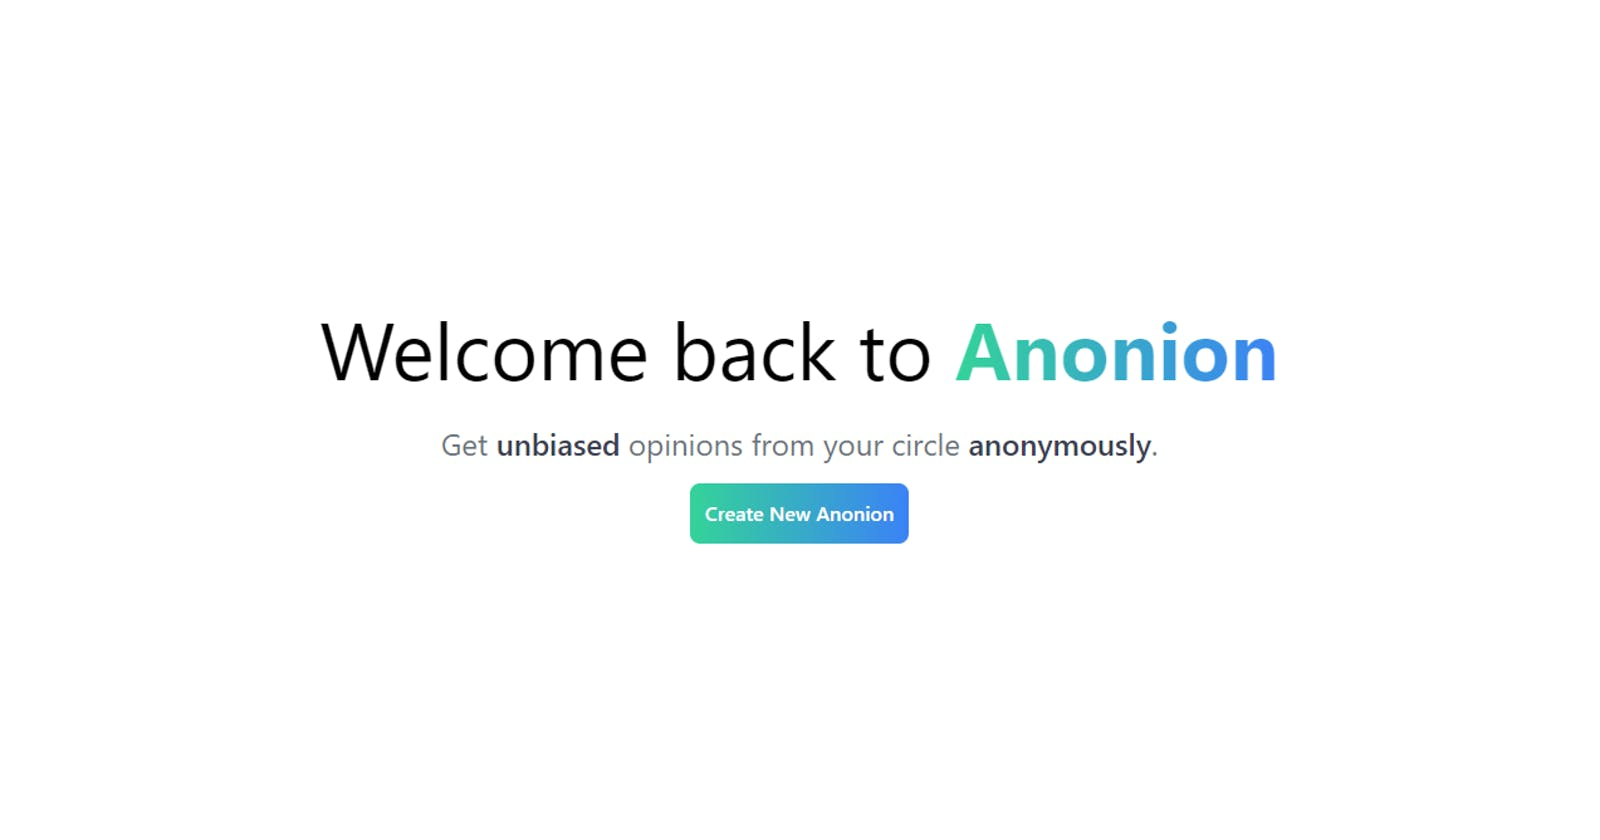 Anonion - Get unbiased opinions from your circle anonymously